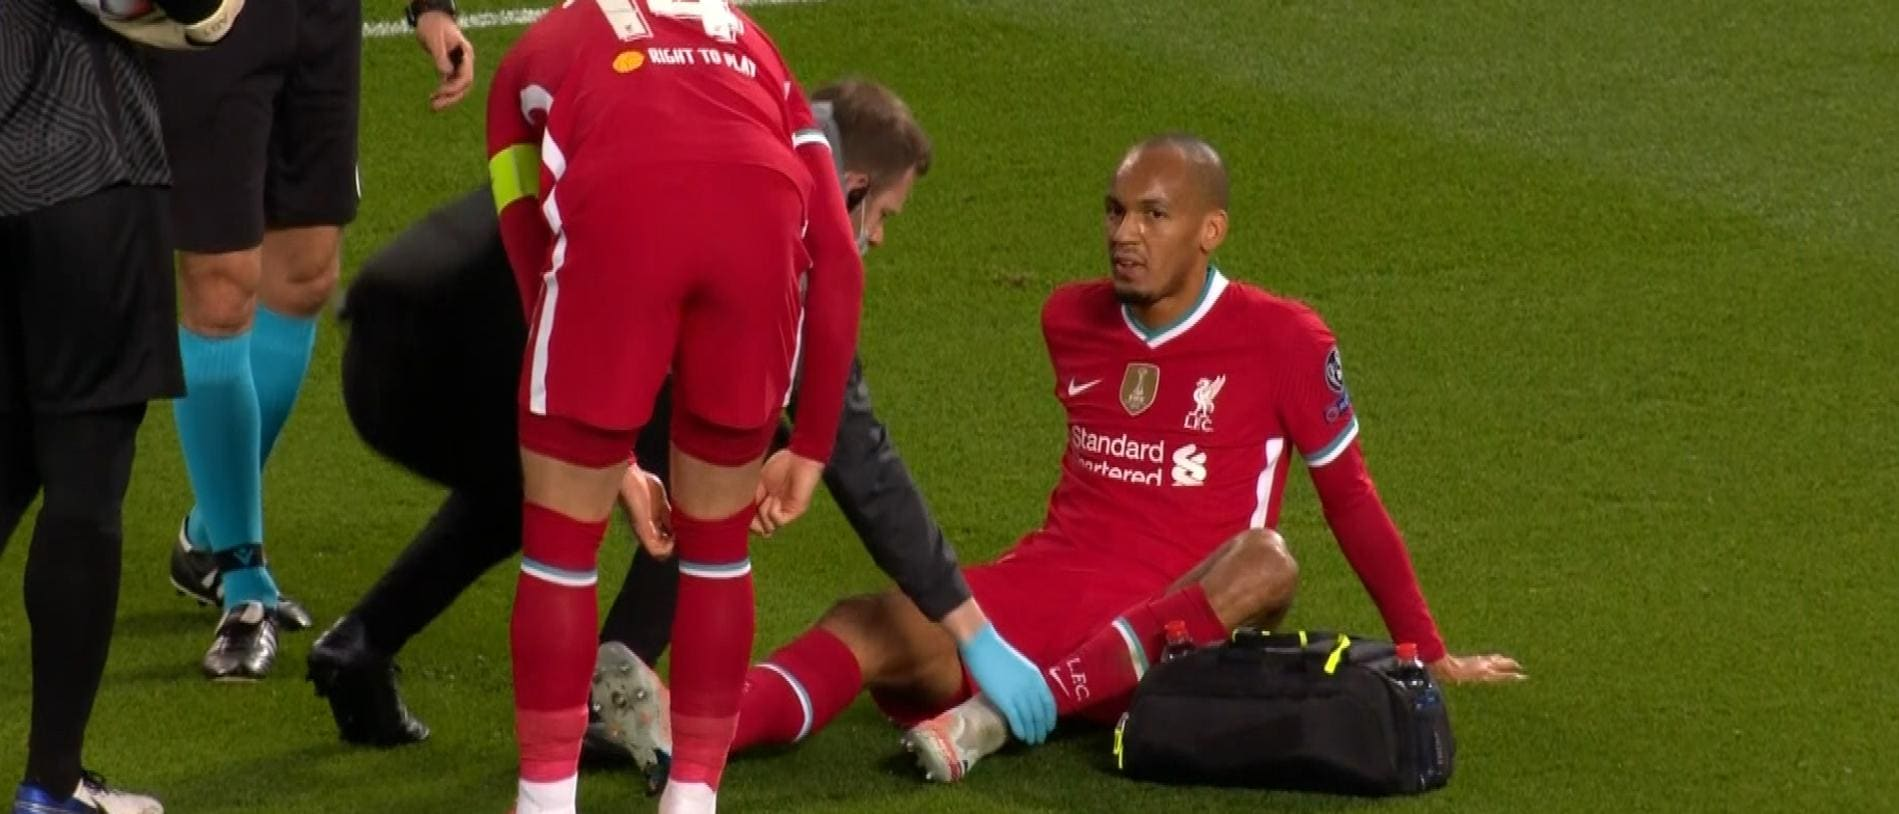 Fabinho went off injured in the first half.